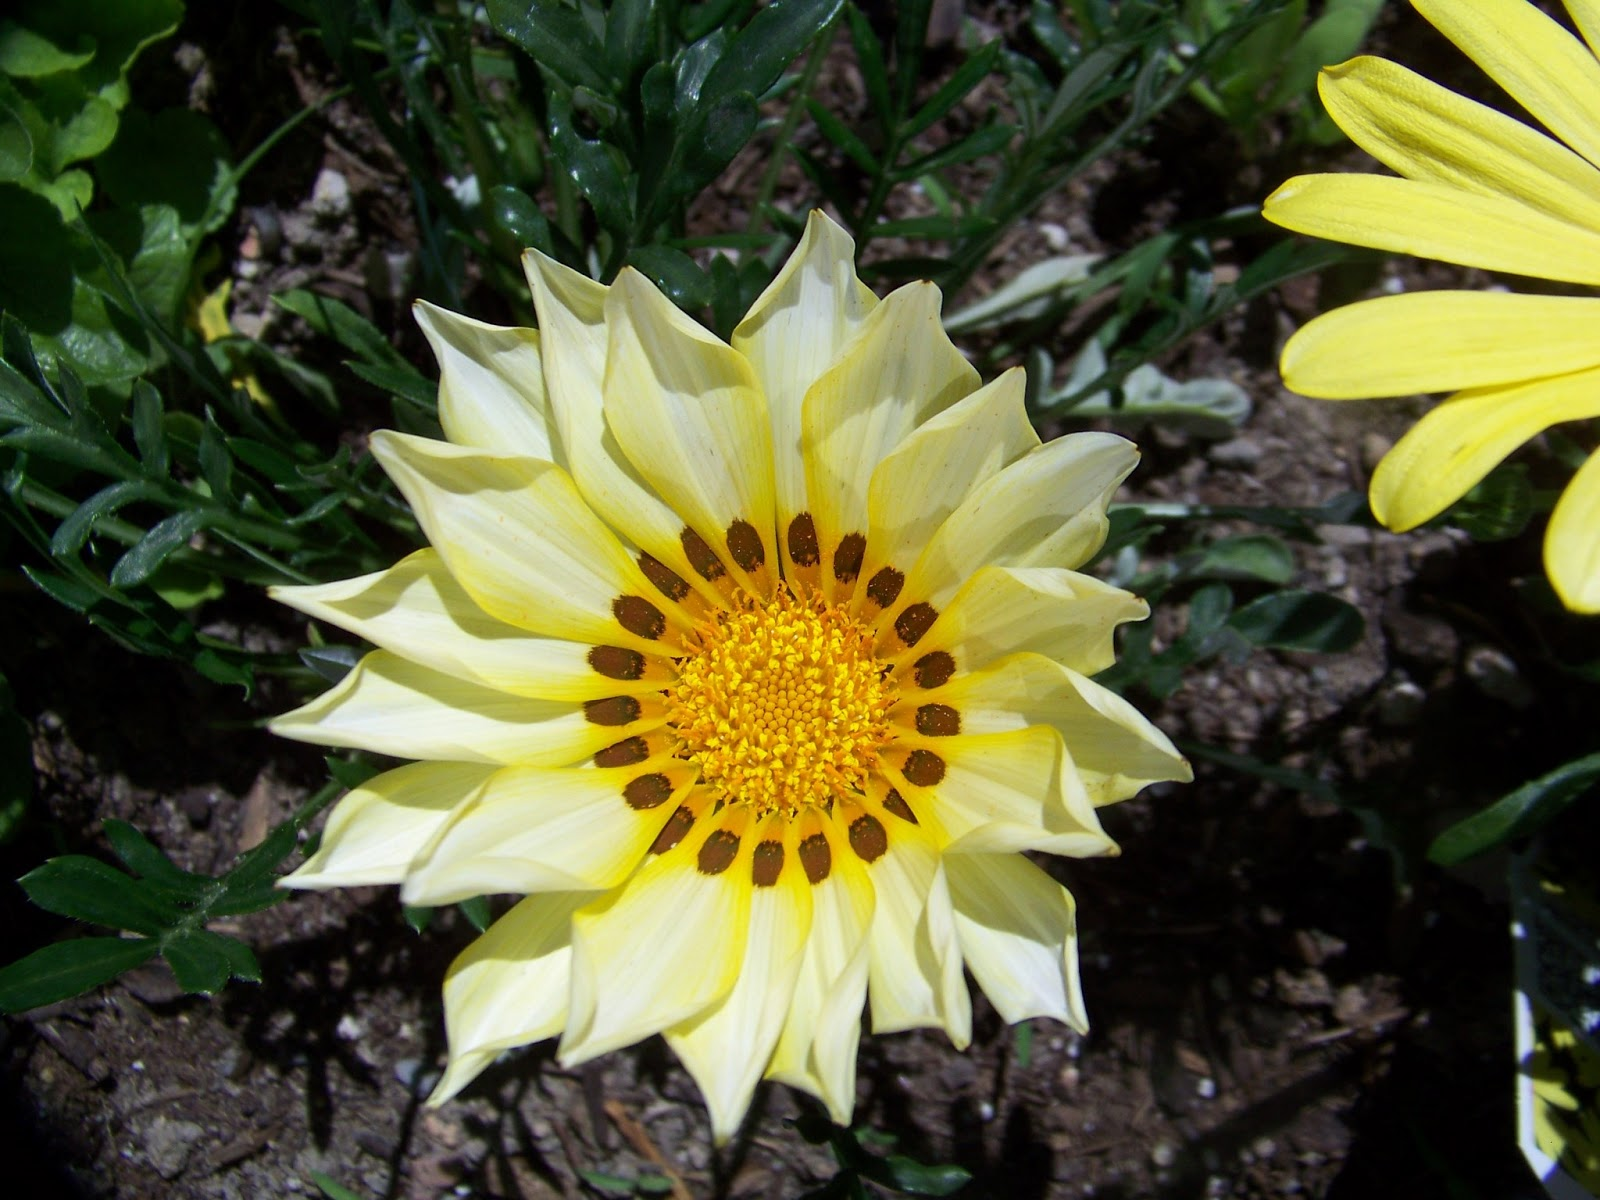 Garden girls year of health the treasure flower the have large daisy like composit flowers they will flower throughout the summer they are often planted as drought tolerant ground cover izmirmasajfo